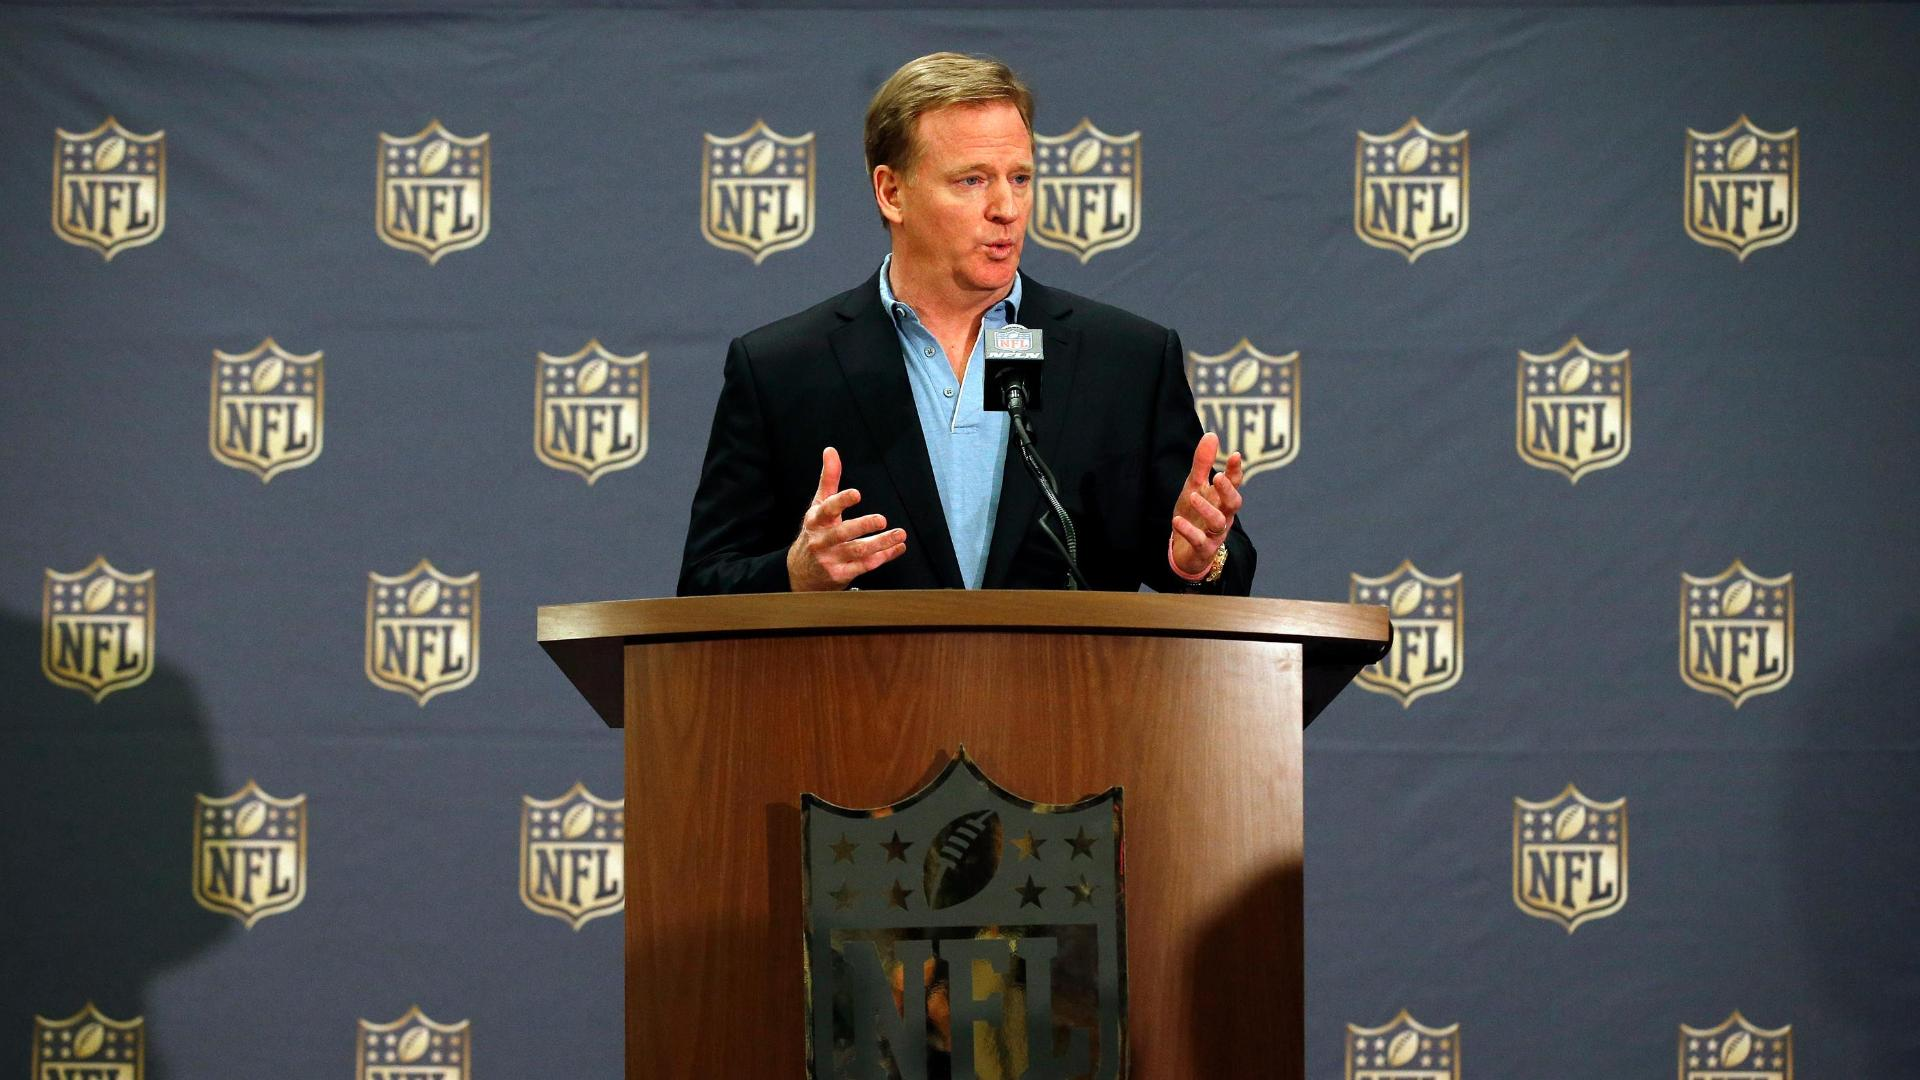 Goodell's Main Points